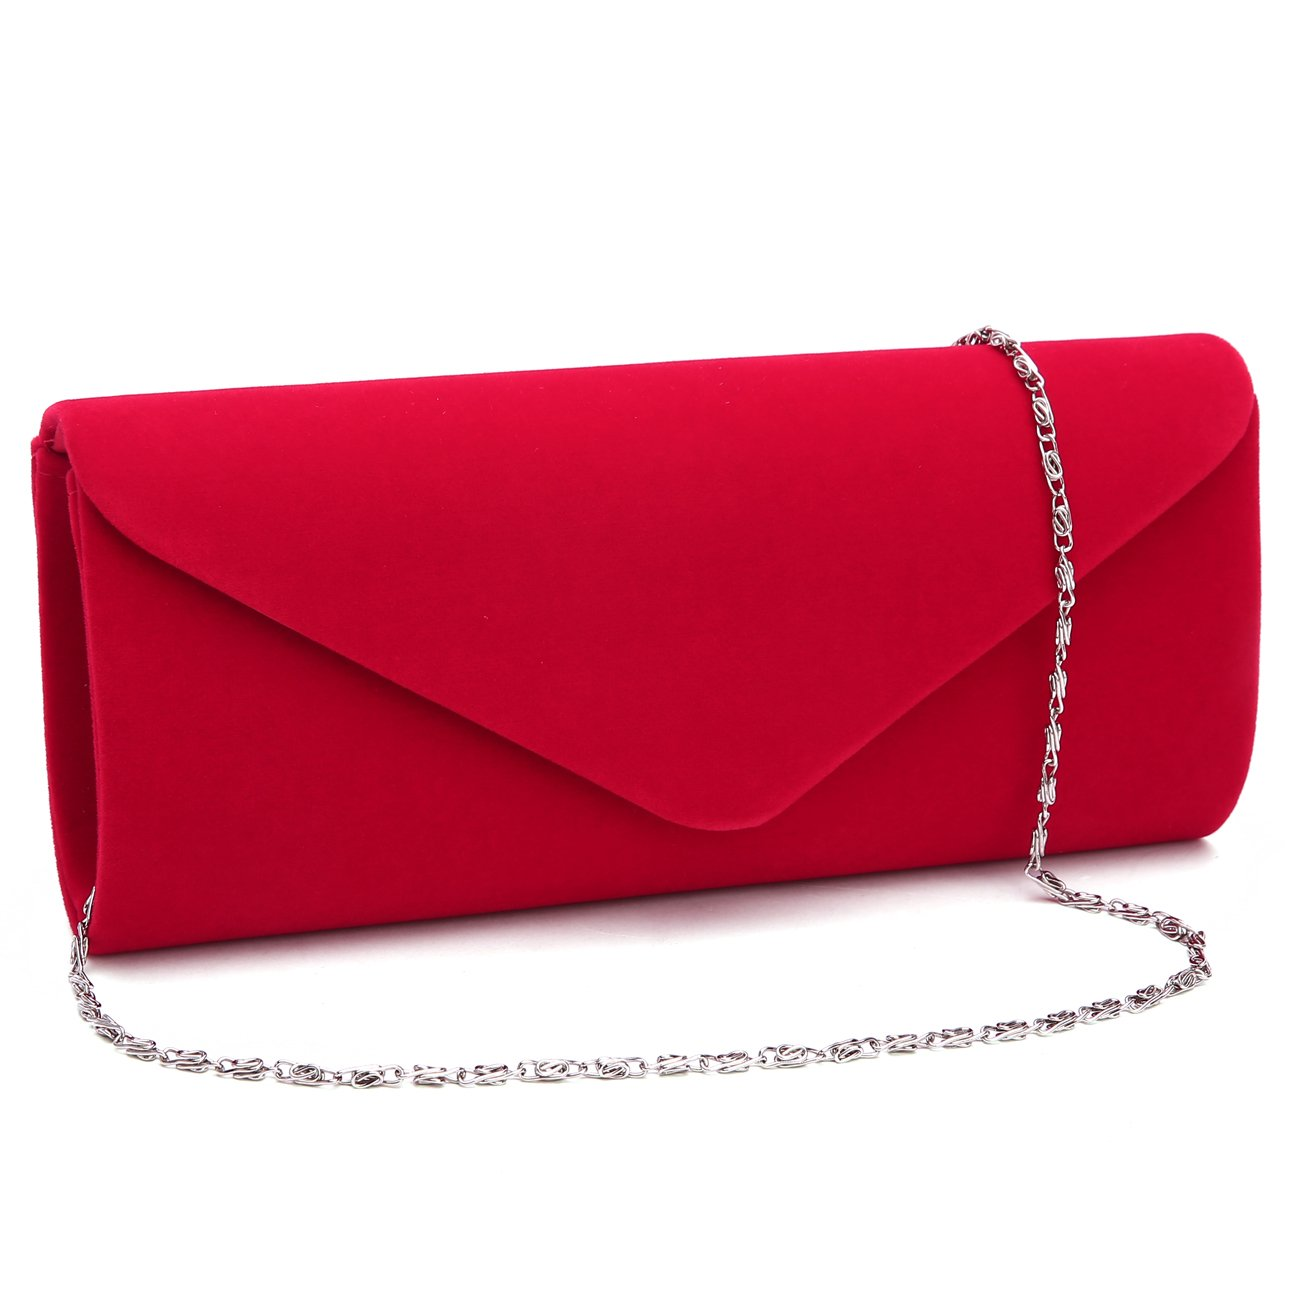 Women Evening Bag Velvet Clutch Purse Envelope Handbag For Wedding Party Prom. GESU